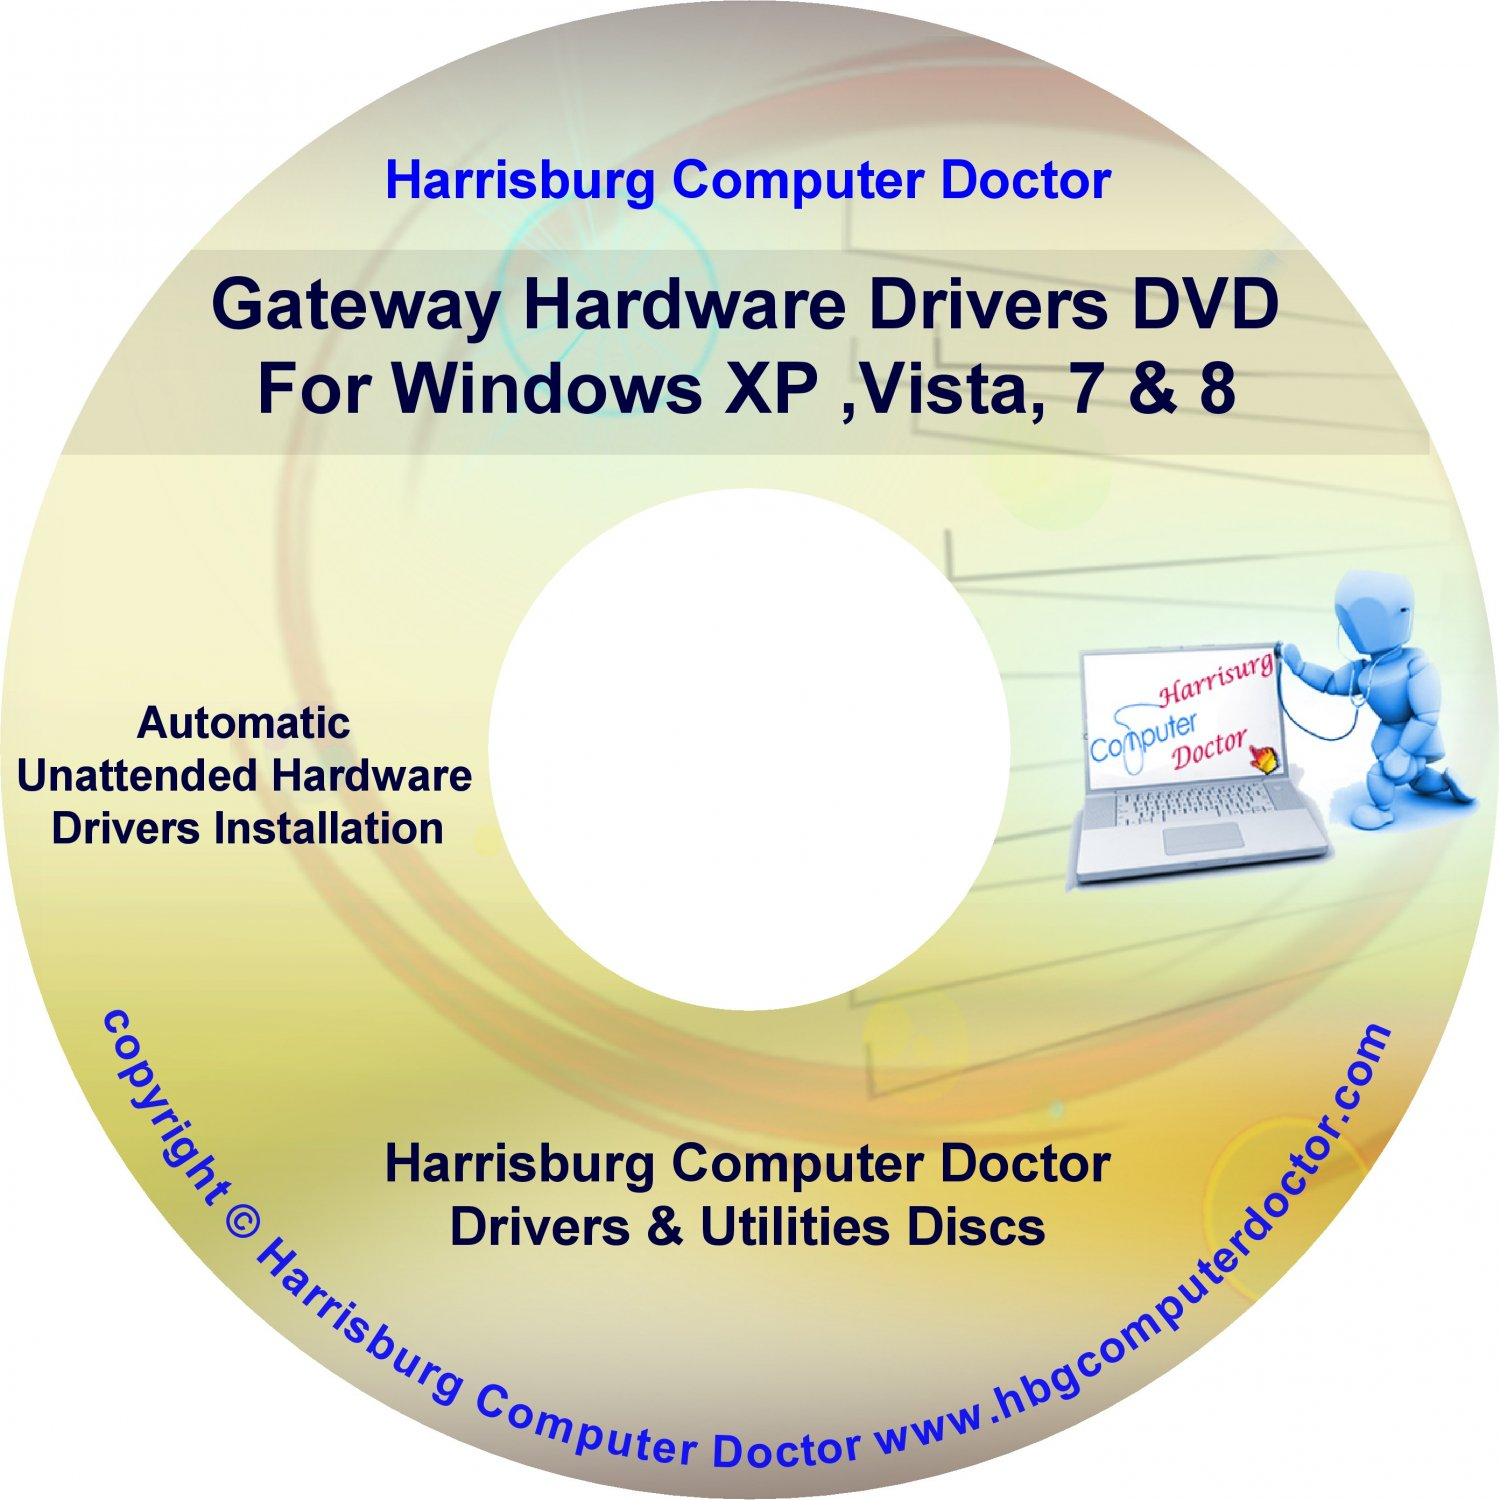 Gateway GT5048j Drivers DVD For Windows, XP, Vista, 7 & 8